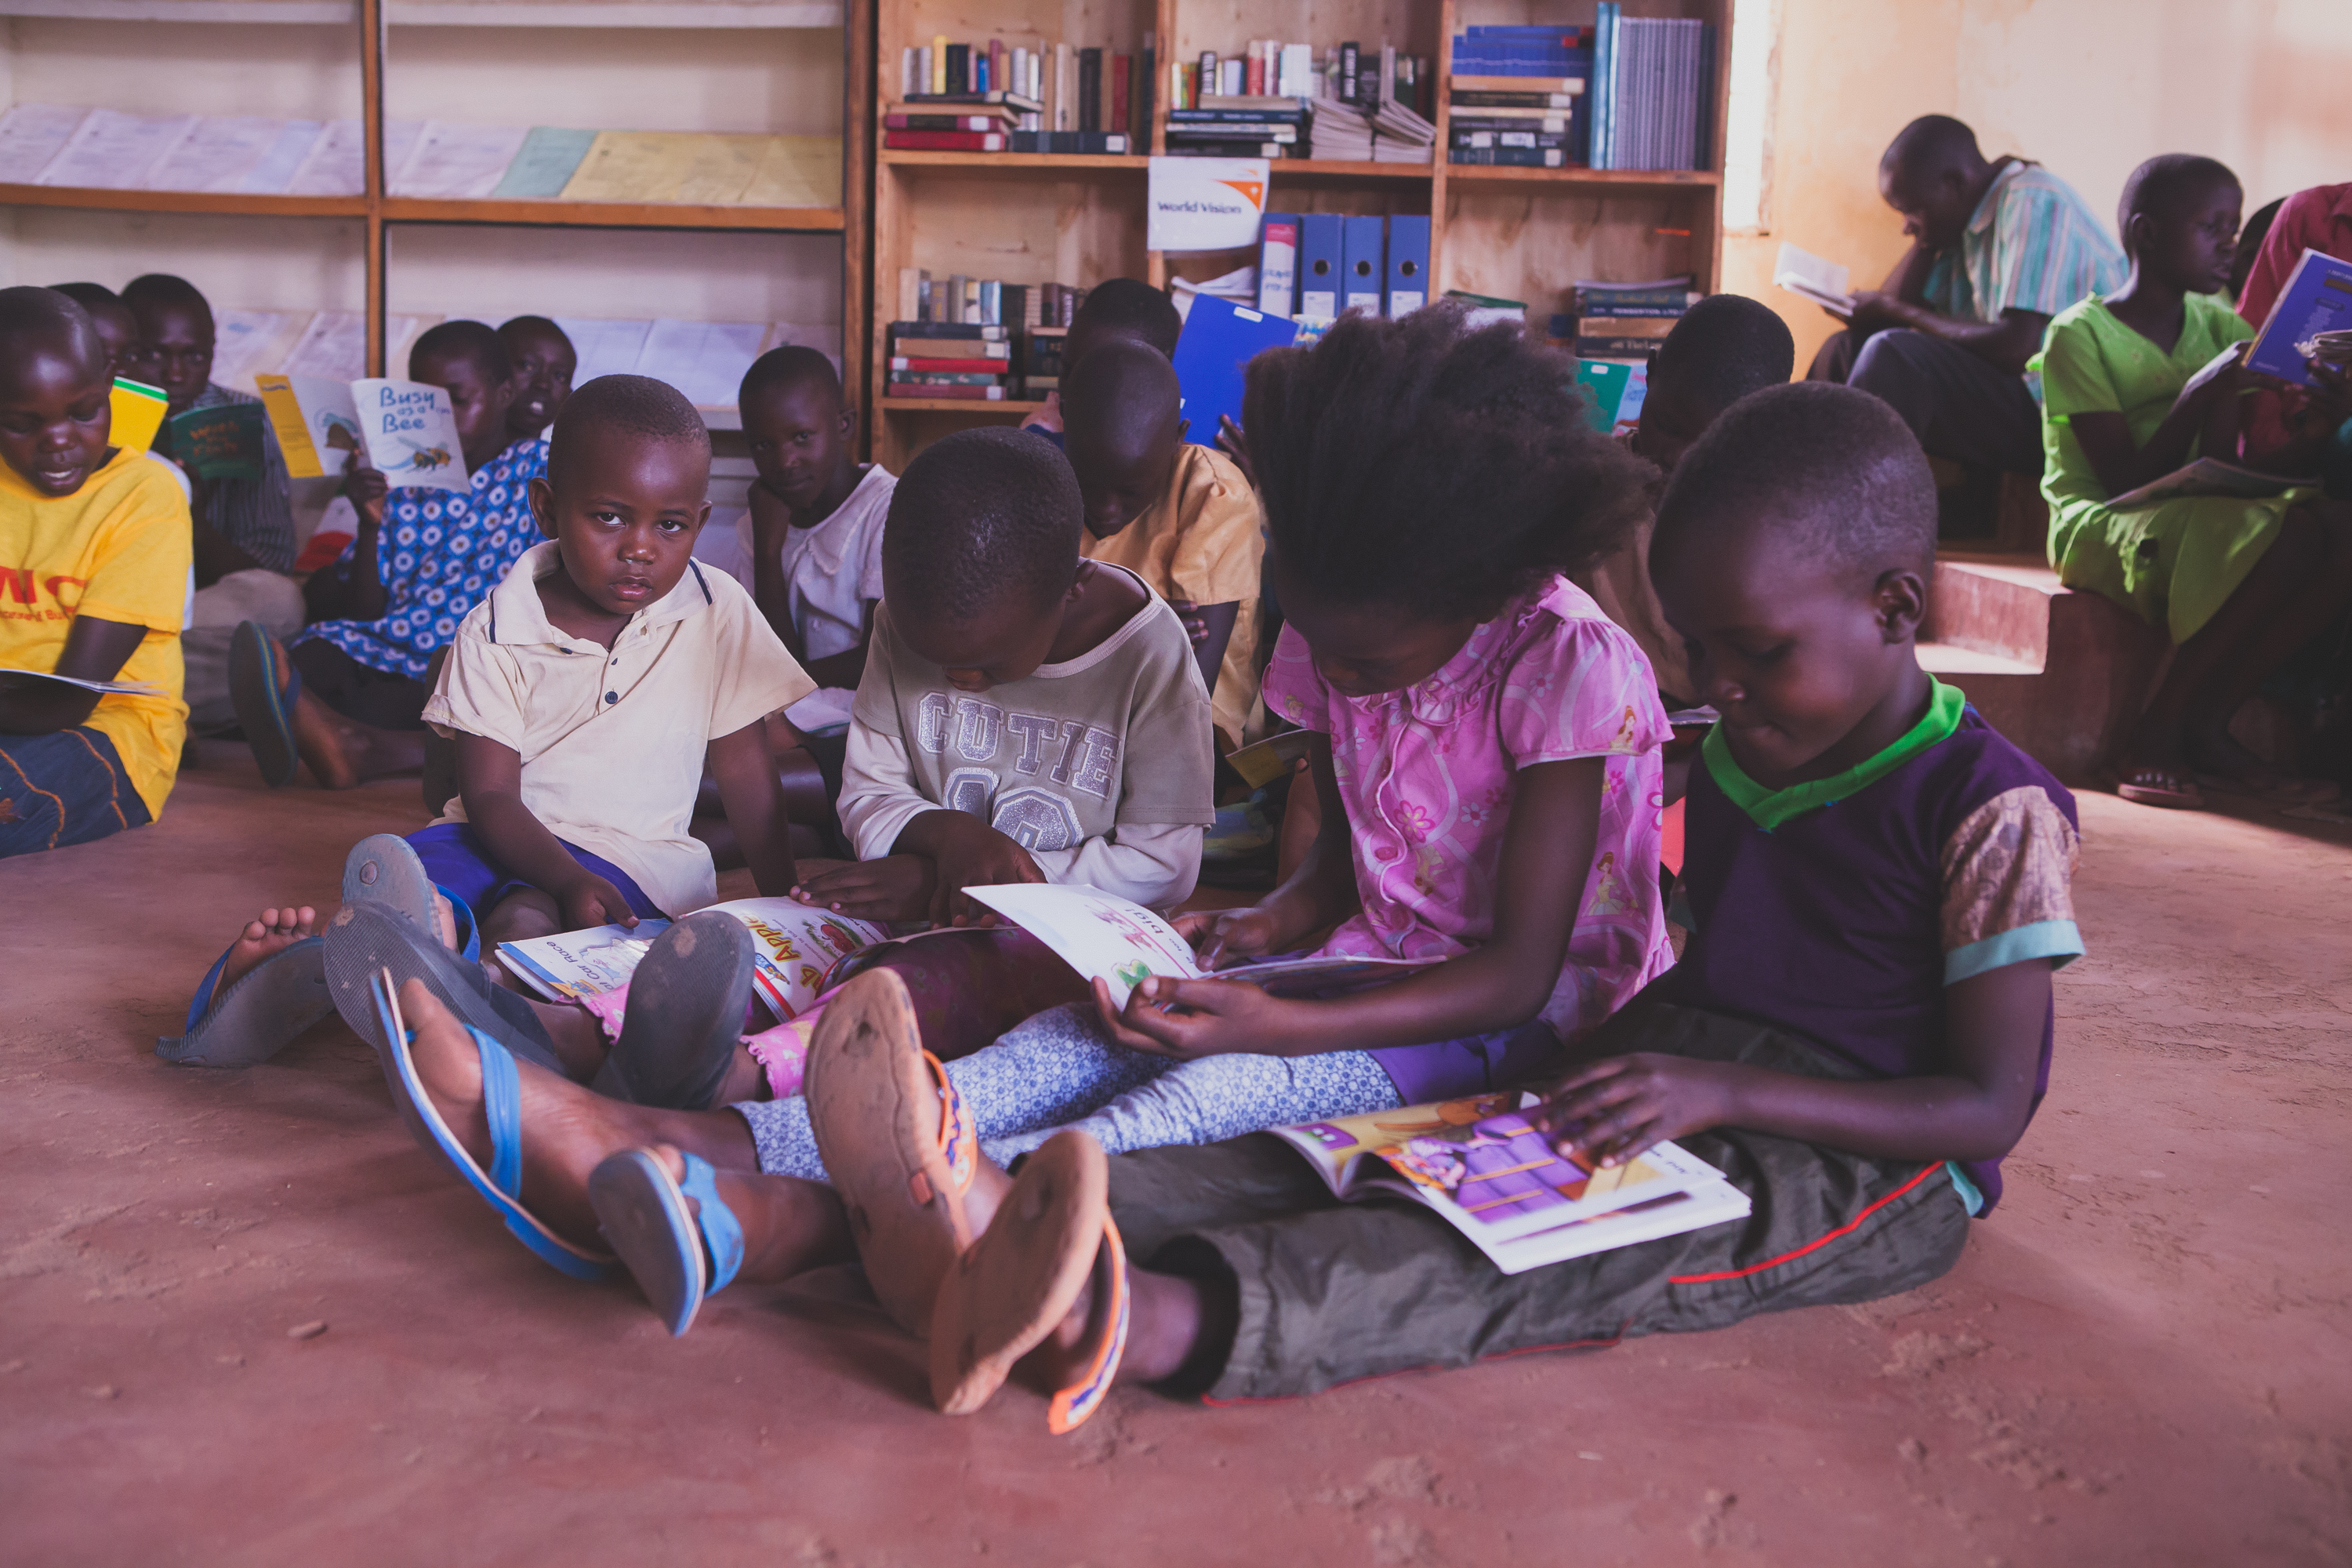 9a3ca8a5871a40fbd302_Children_reading_at_library_NP.jpg